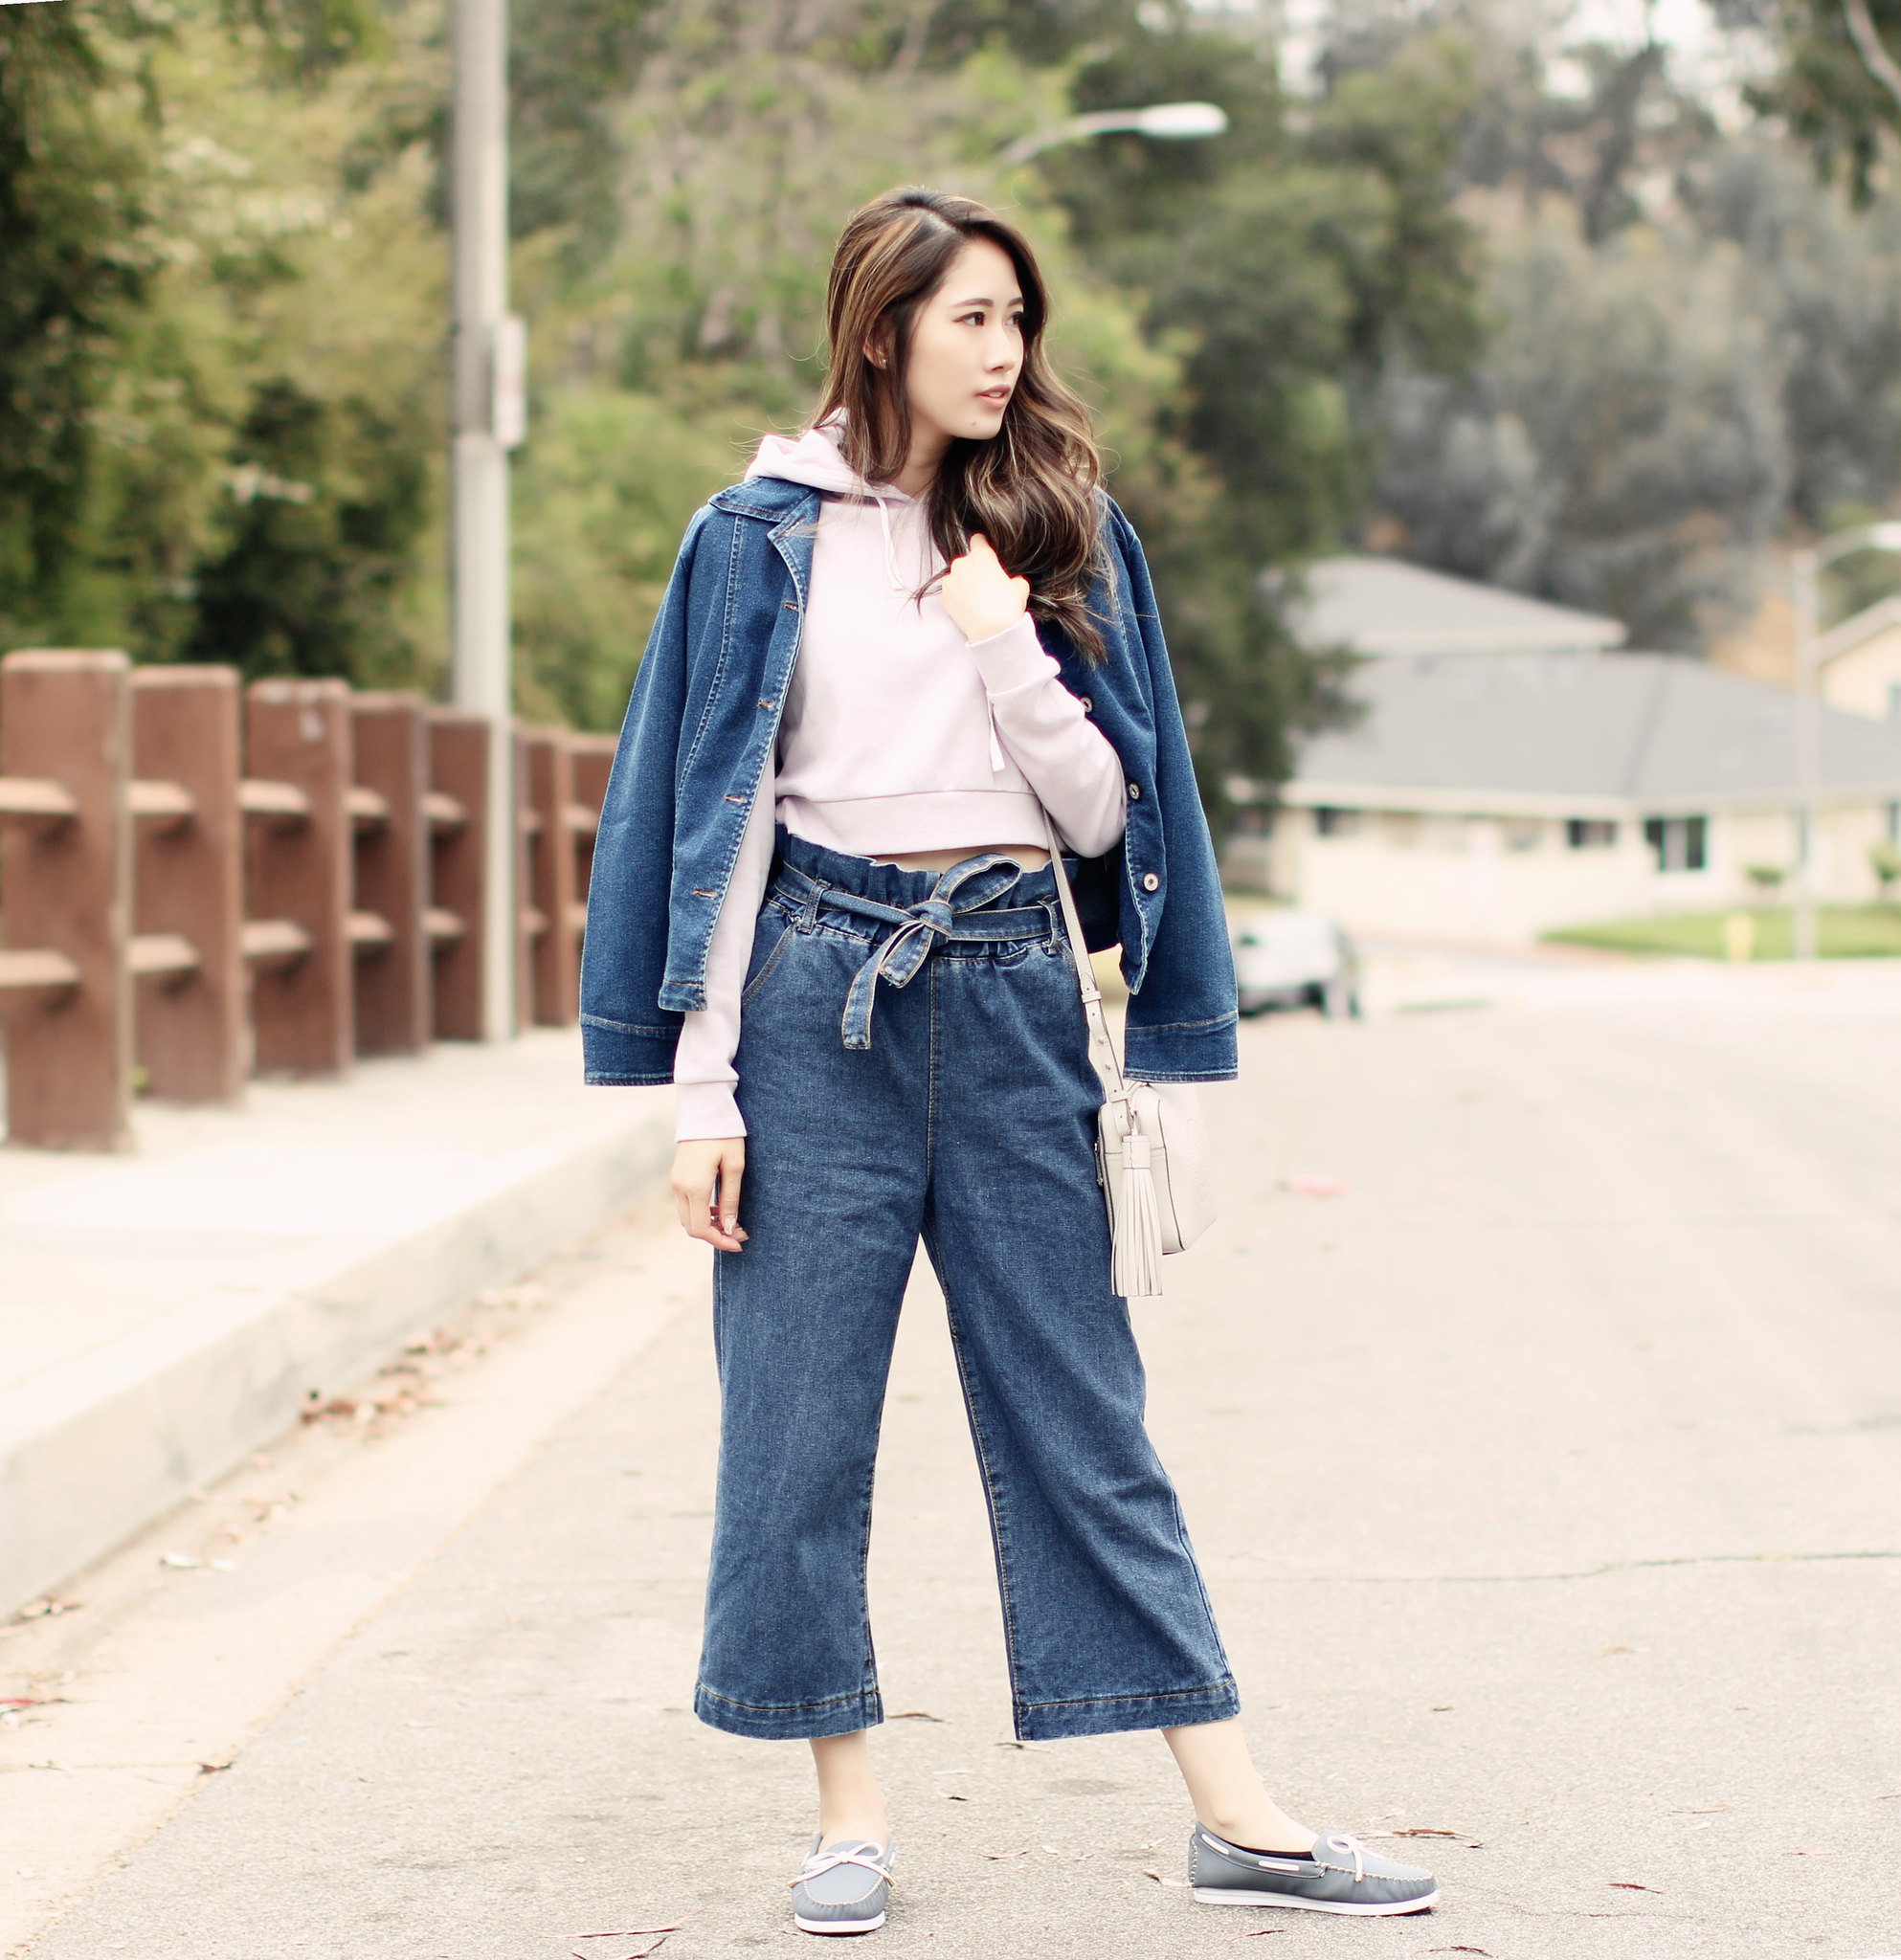 5083-ootd-fashion-style-outfitoftheday-wiwt-streetstyle-zara-f21xme-denim-thrifted-guess-koreanfashion-lookbook-elizabeeetht-clothestoyouuu